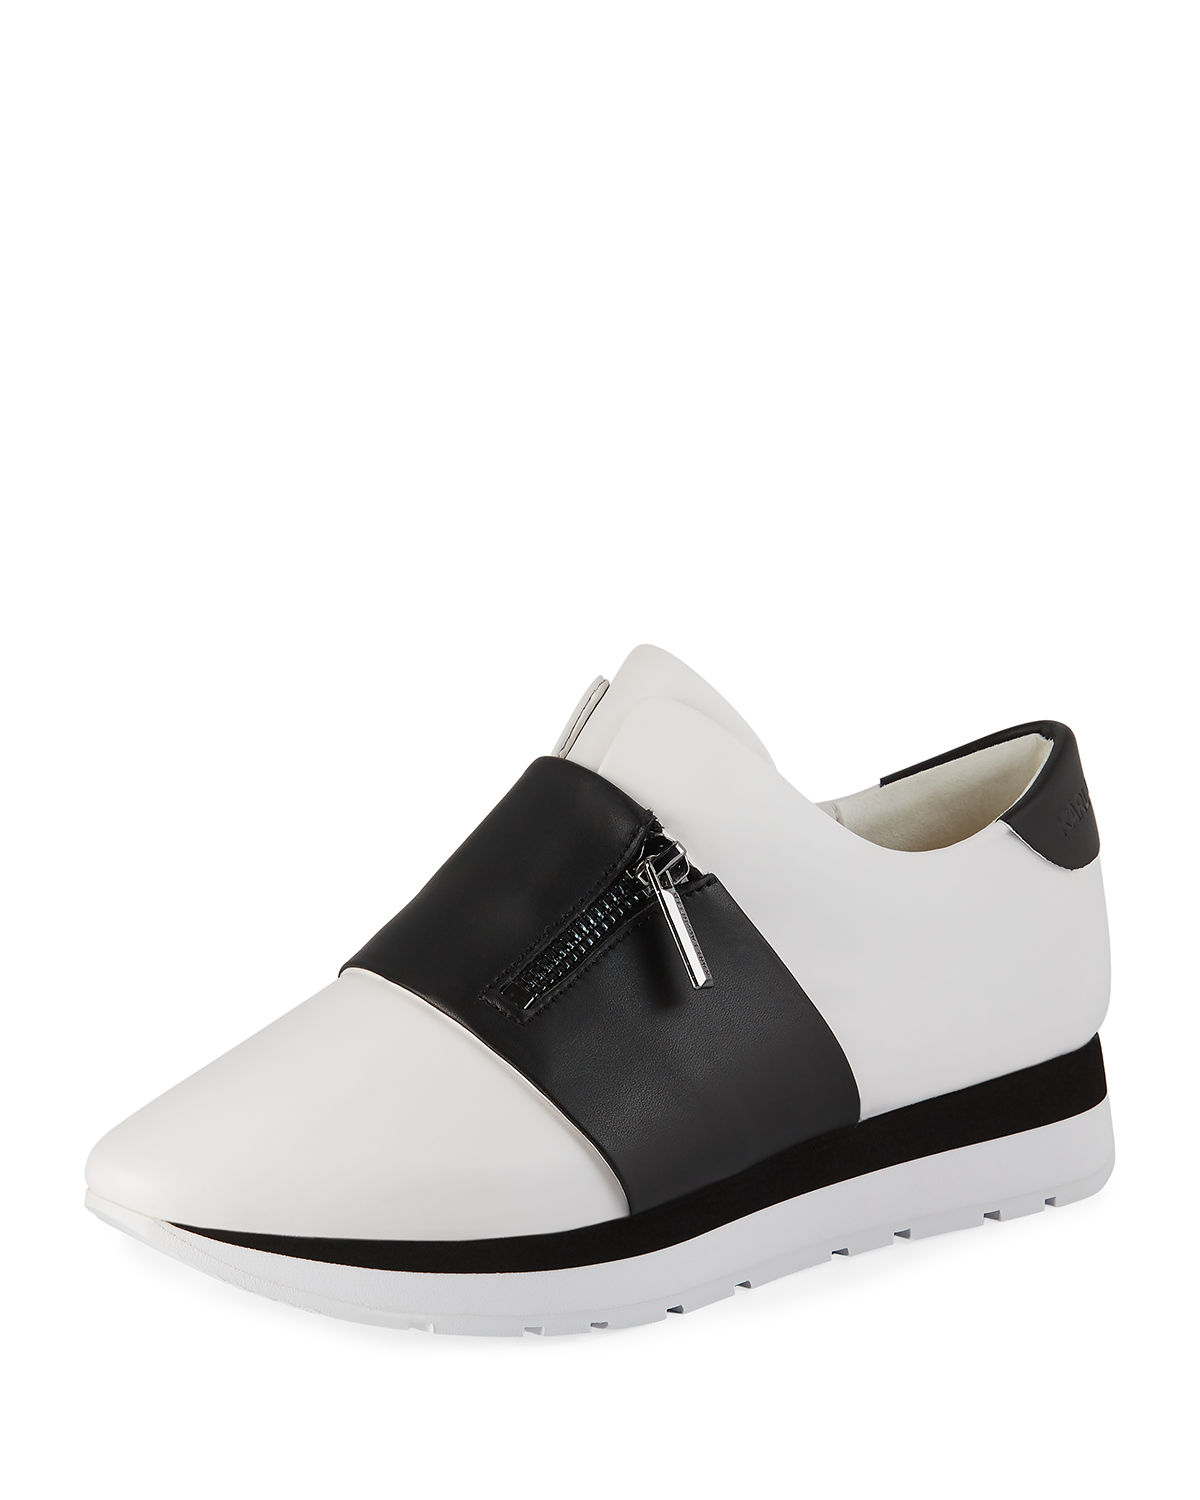 ec187a453ade Karl Lagerfeld Kenley Banded Slip-On Leather Sneakers In White ...